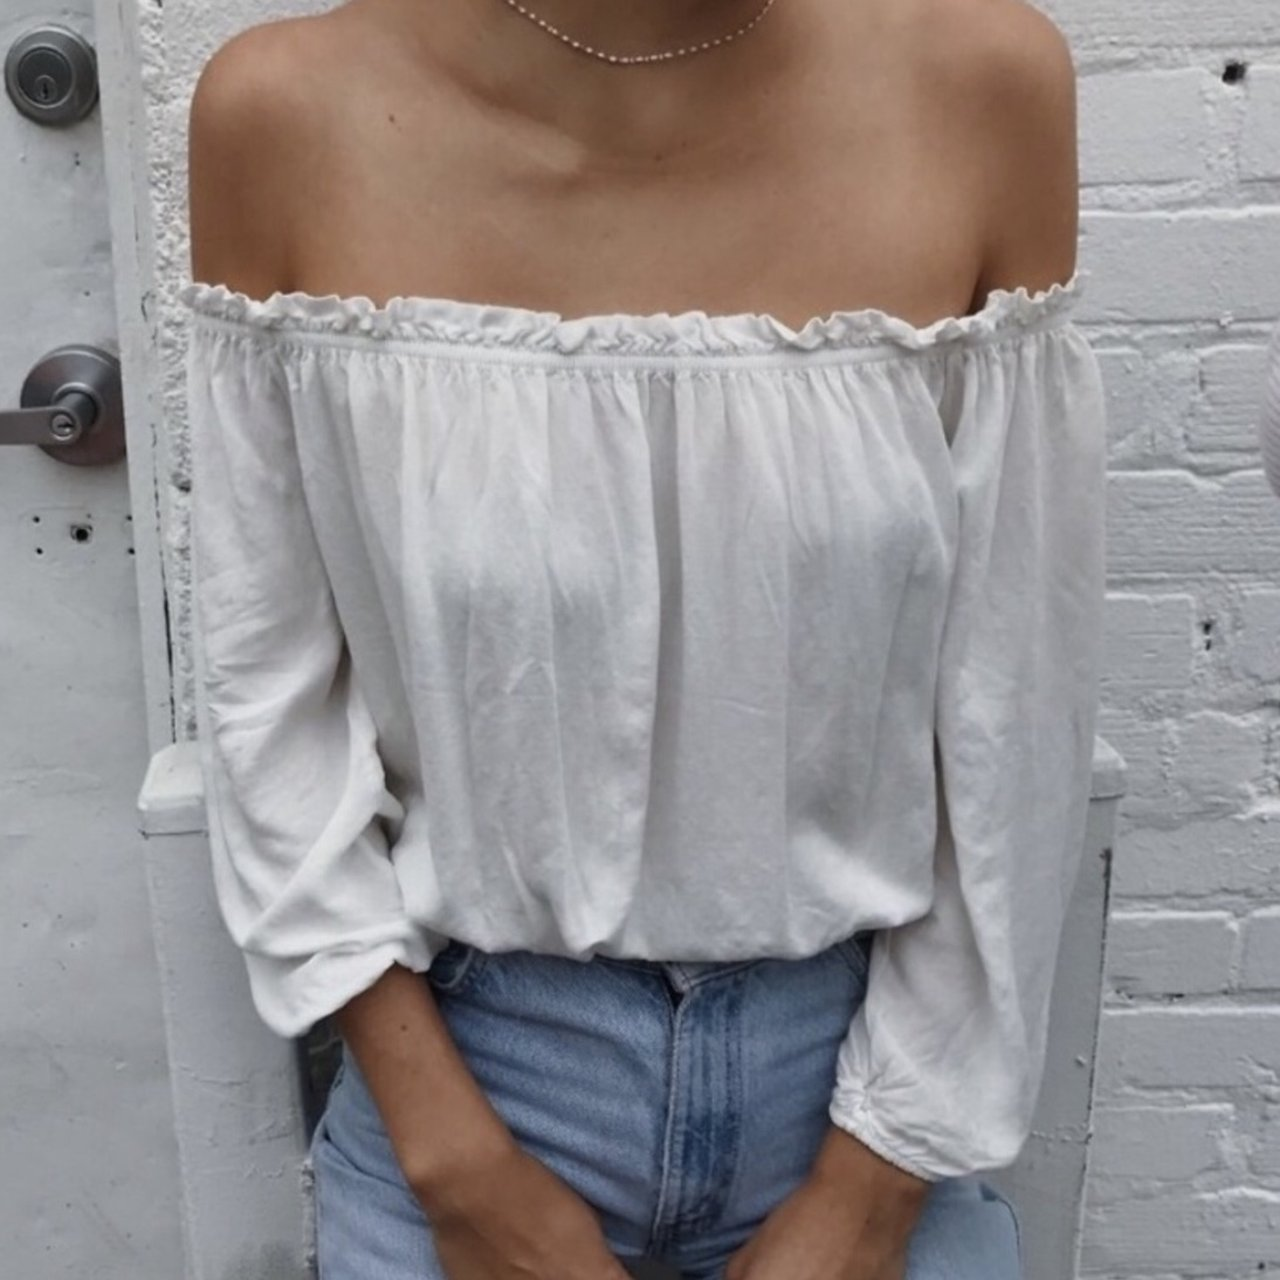 d0b82c968f6895 Brandy Melville White Maura Top. Only worn once